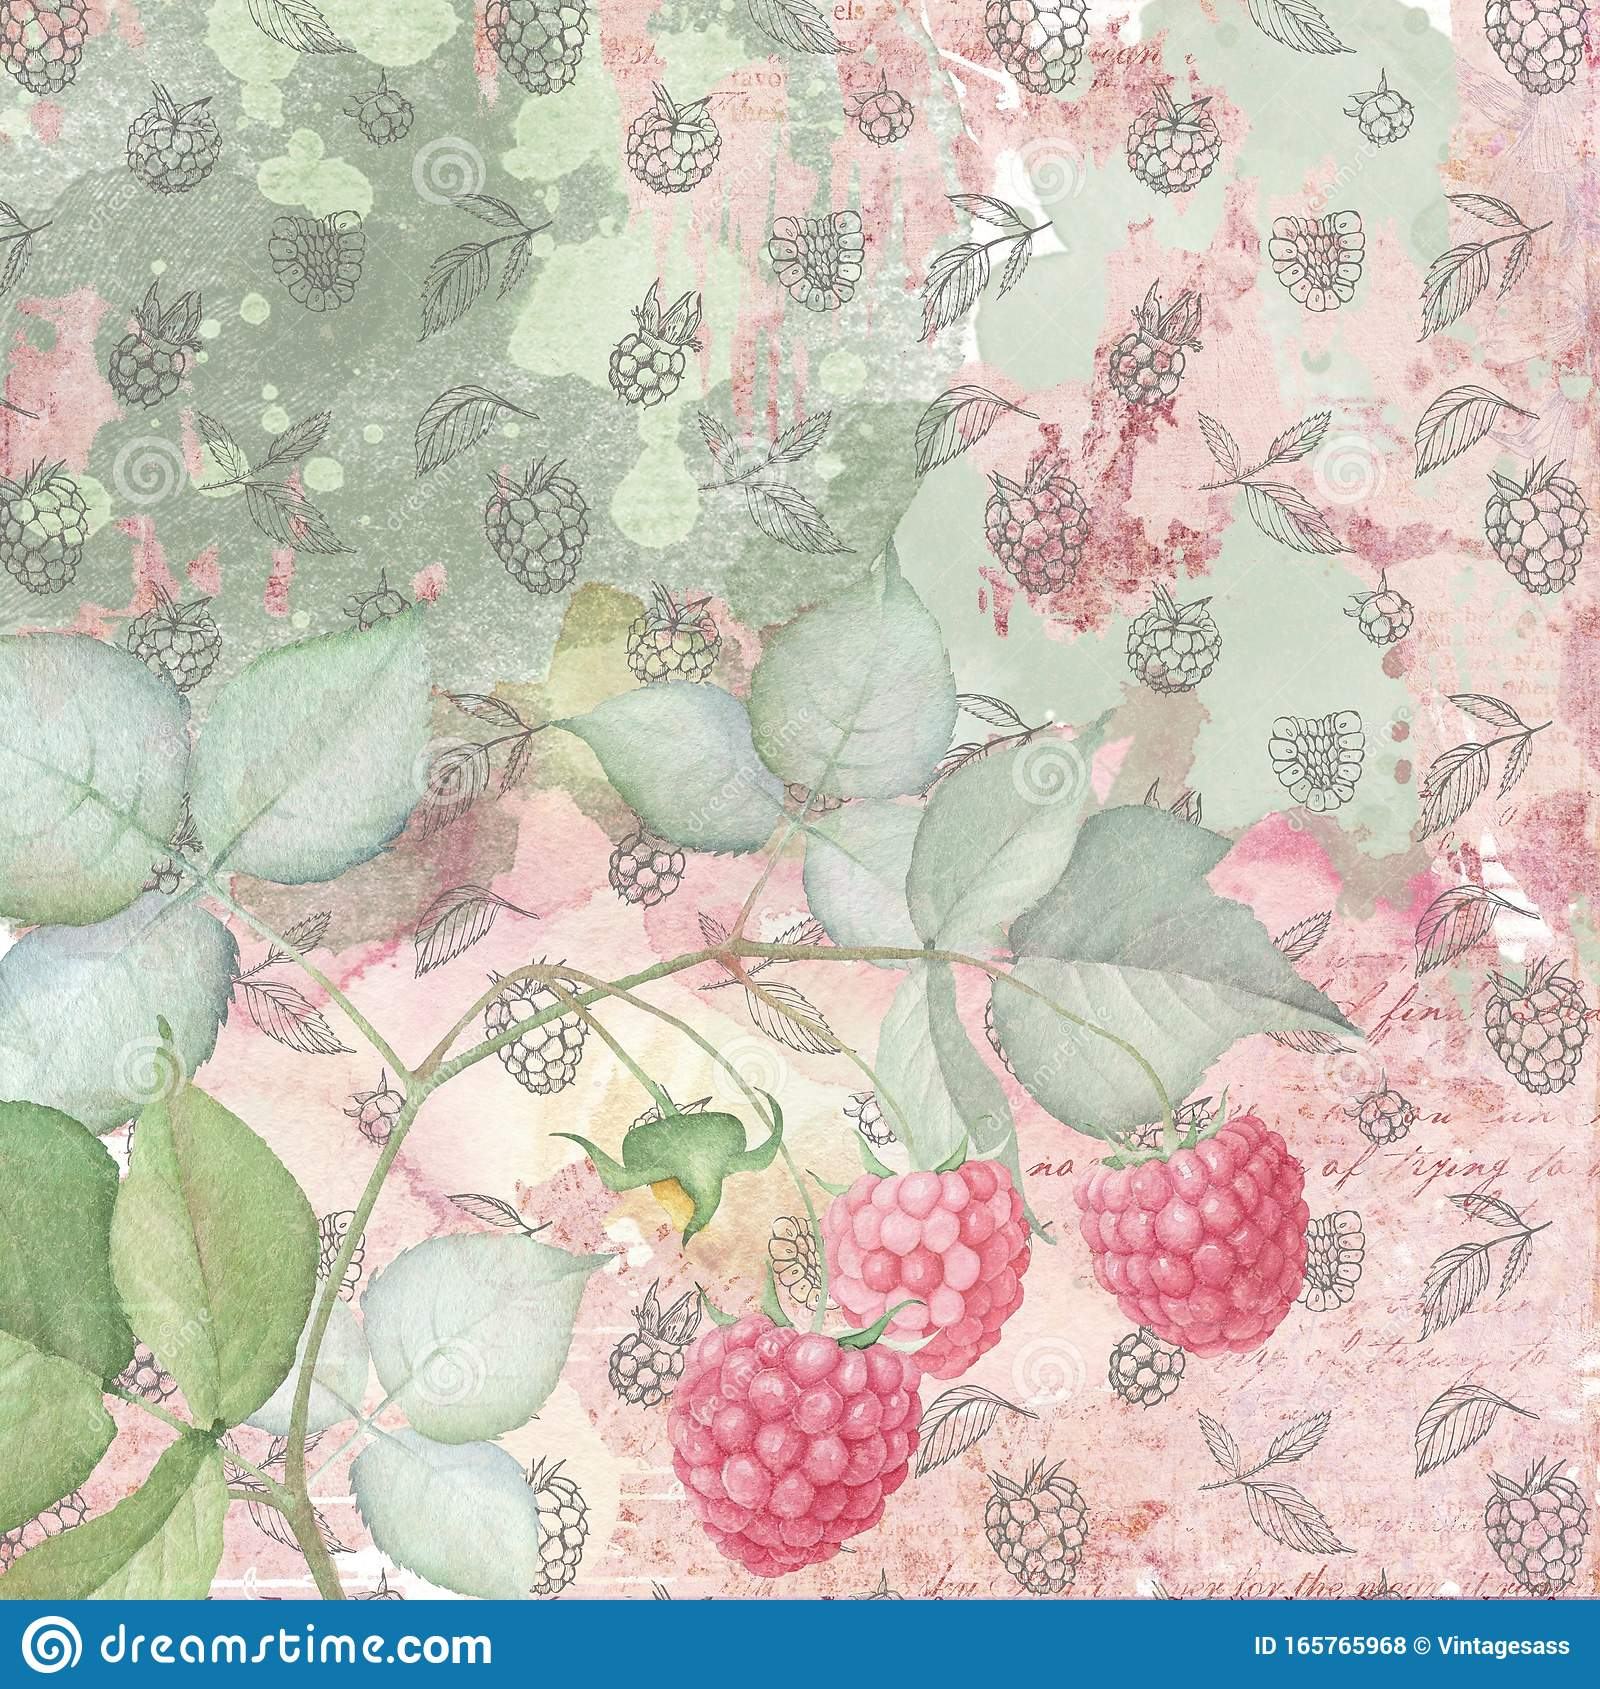 Shabby Chic Vintage Raspberry Collage Background Vintage Floral Chalkboard Texture Berries Stock Illustration Illustration Of Floral Berries 165765968